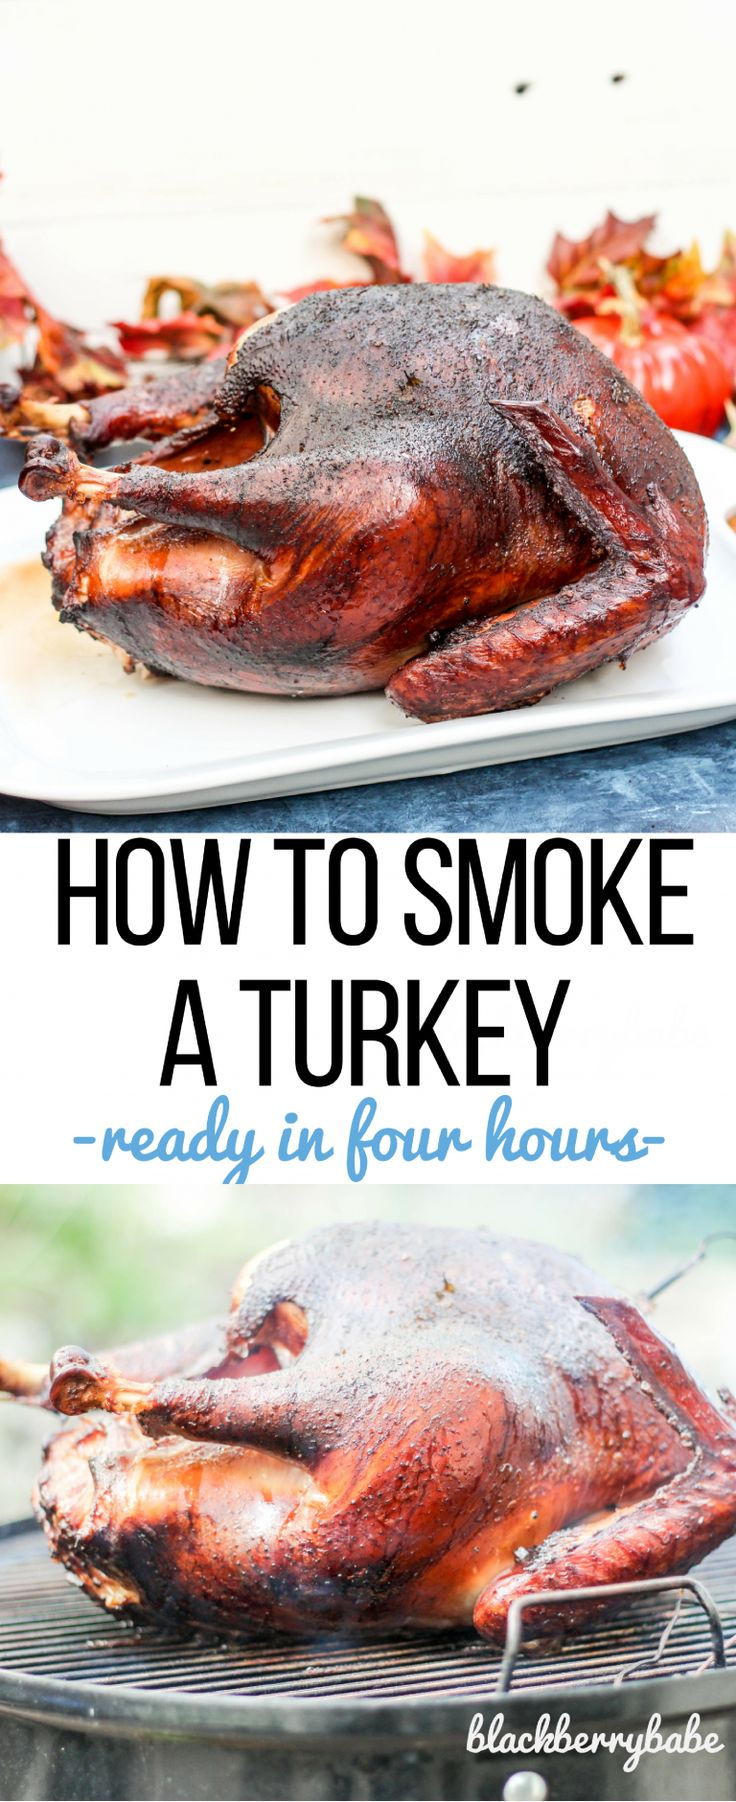 Smoking a whole turkey is easier than you think! Tips on how long to smoke, what type of wood to use, and how to brine the bird! #700reasons #ad